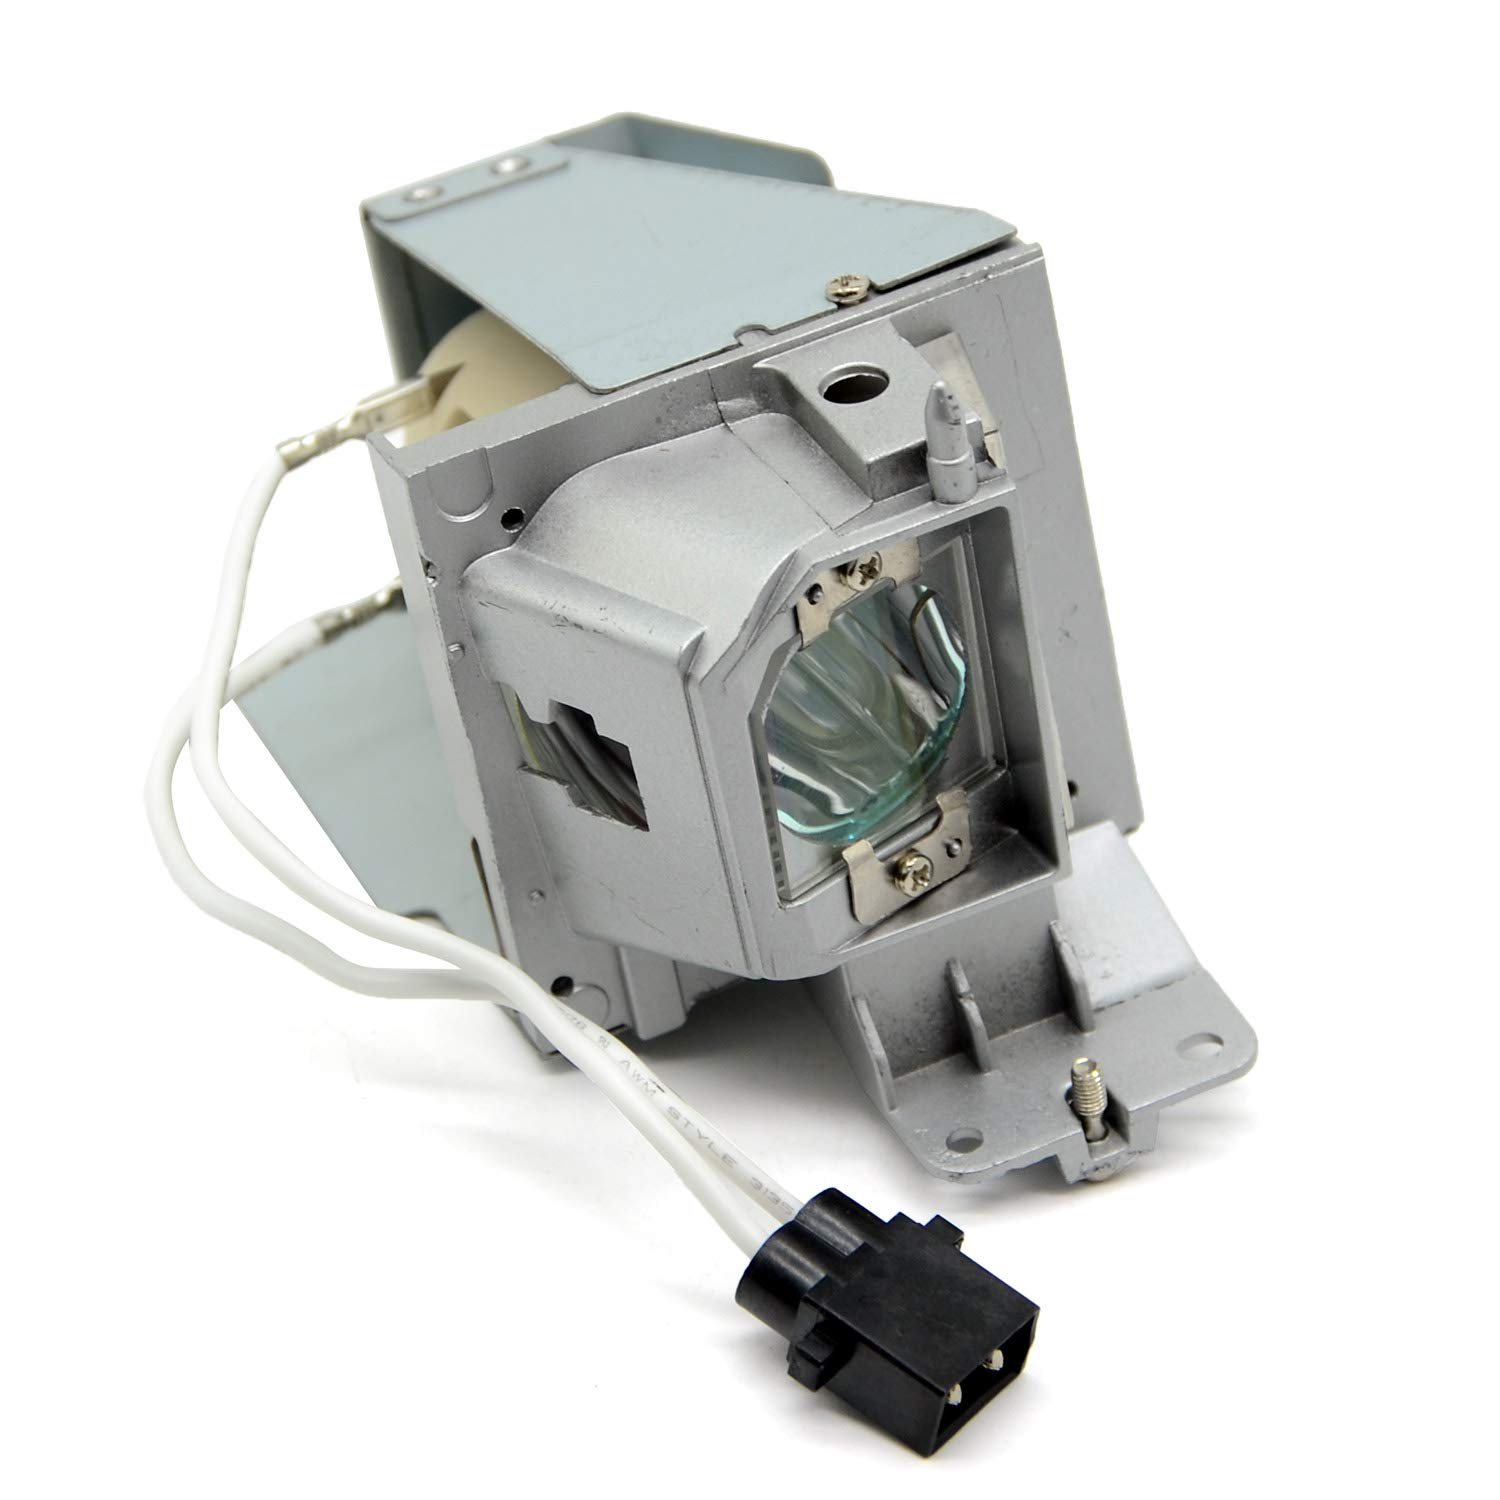 Litance BL-FP190E/ SP.8VH01GC01 Replacement Lamp for Optoma HD141X, HD26, GT1080, W316, BR323, BR326, DH1009, DW333, DX346, EH200ST, S312, S316, X316 Projectors by Litance (Image #3)